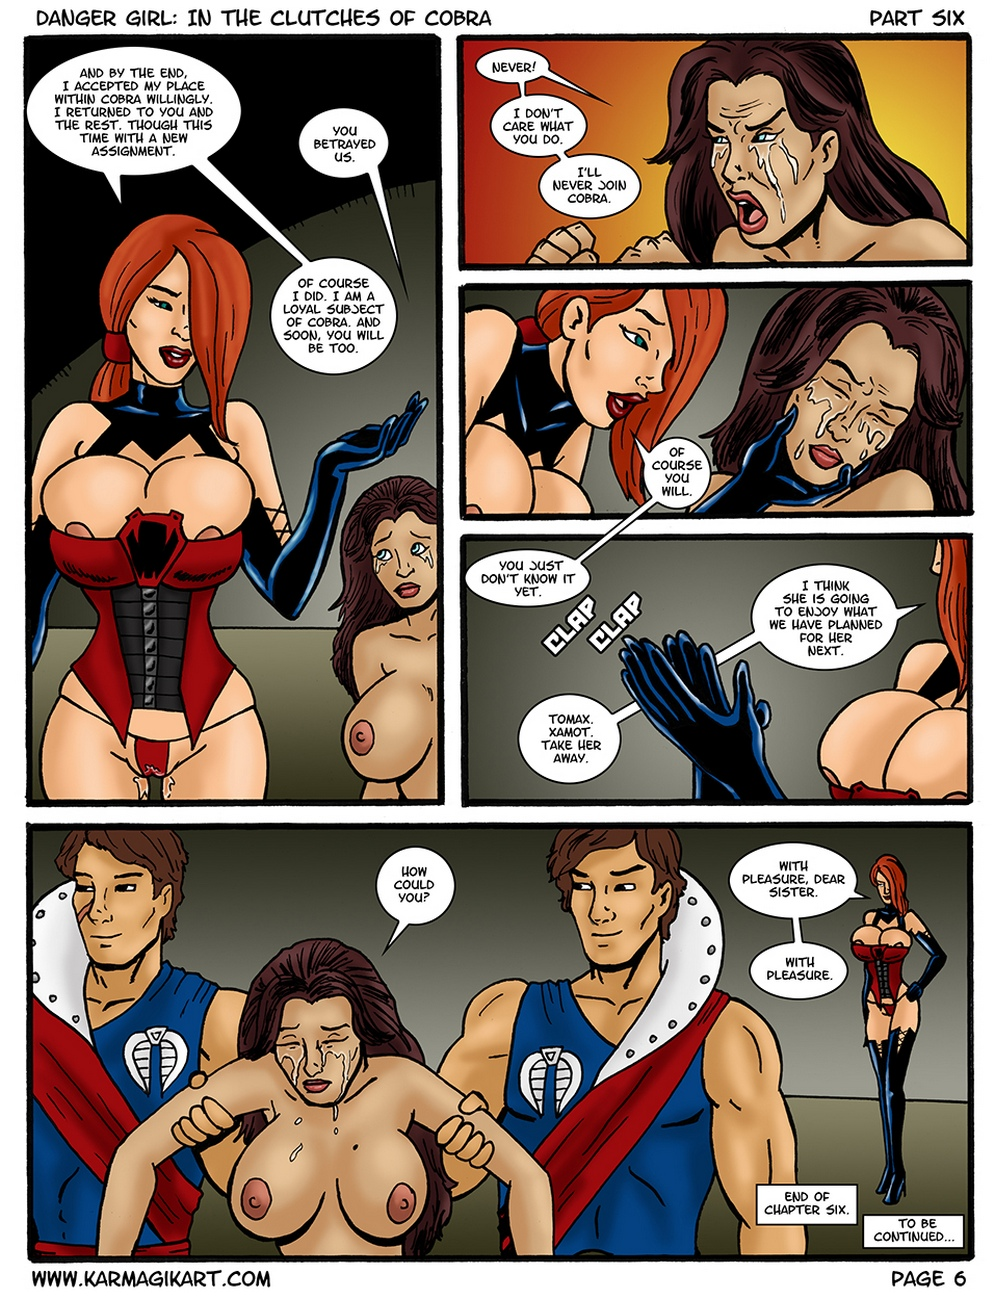 Danger Girl – In The Clutches Of Cobra 6 comic porn